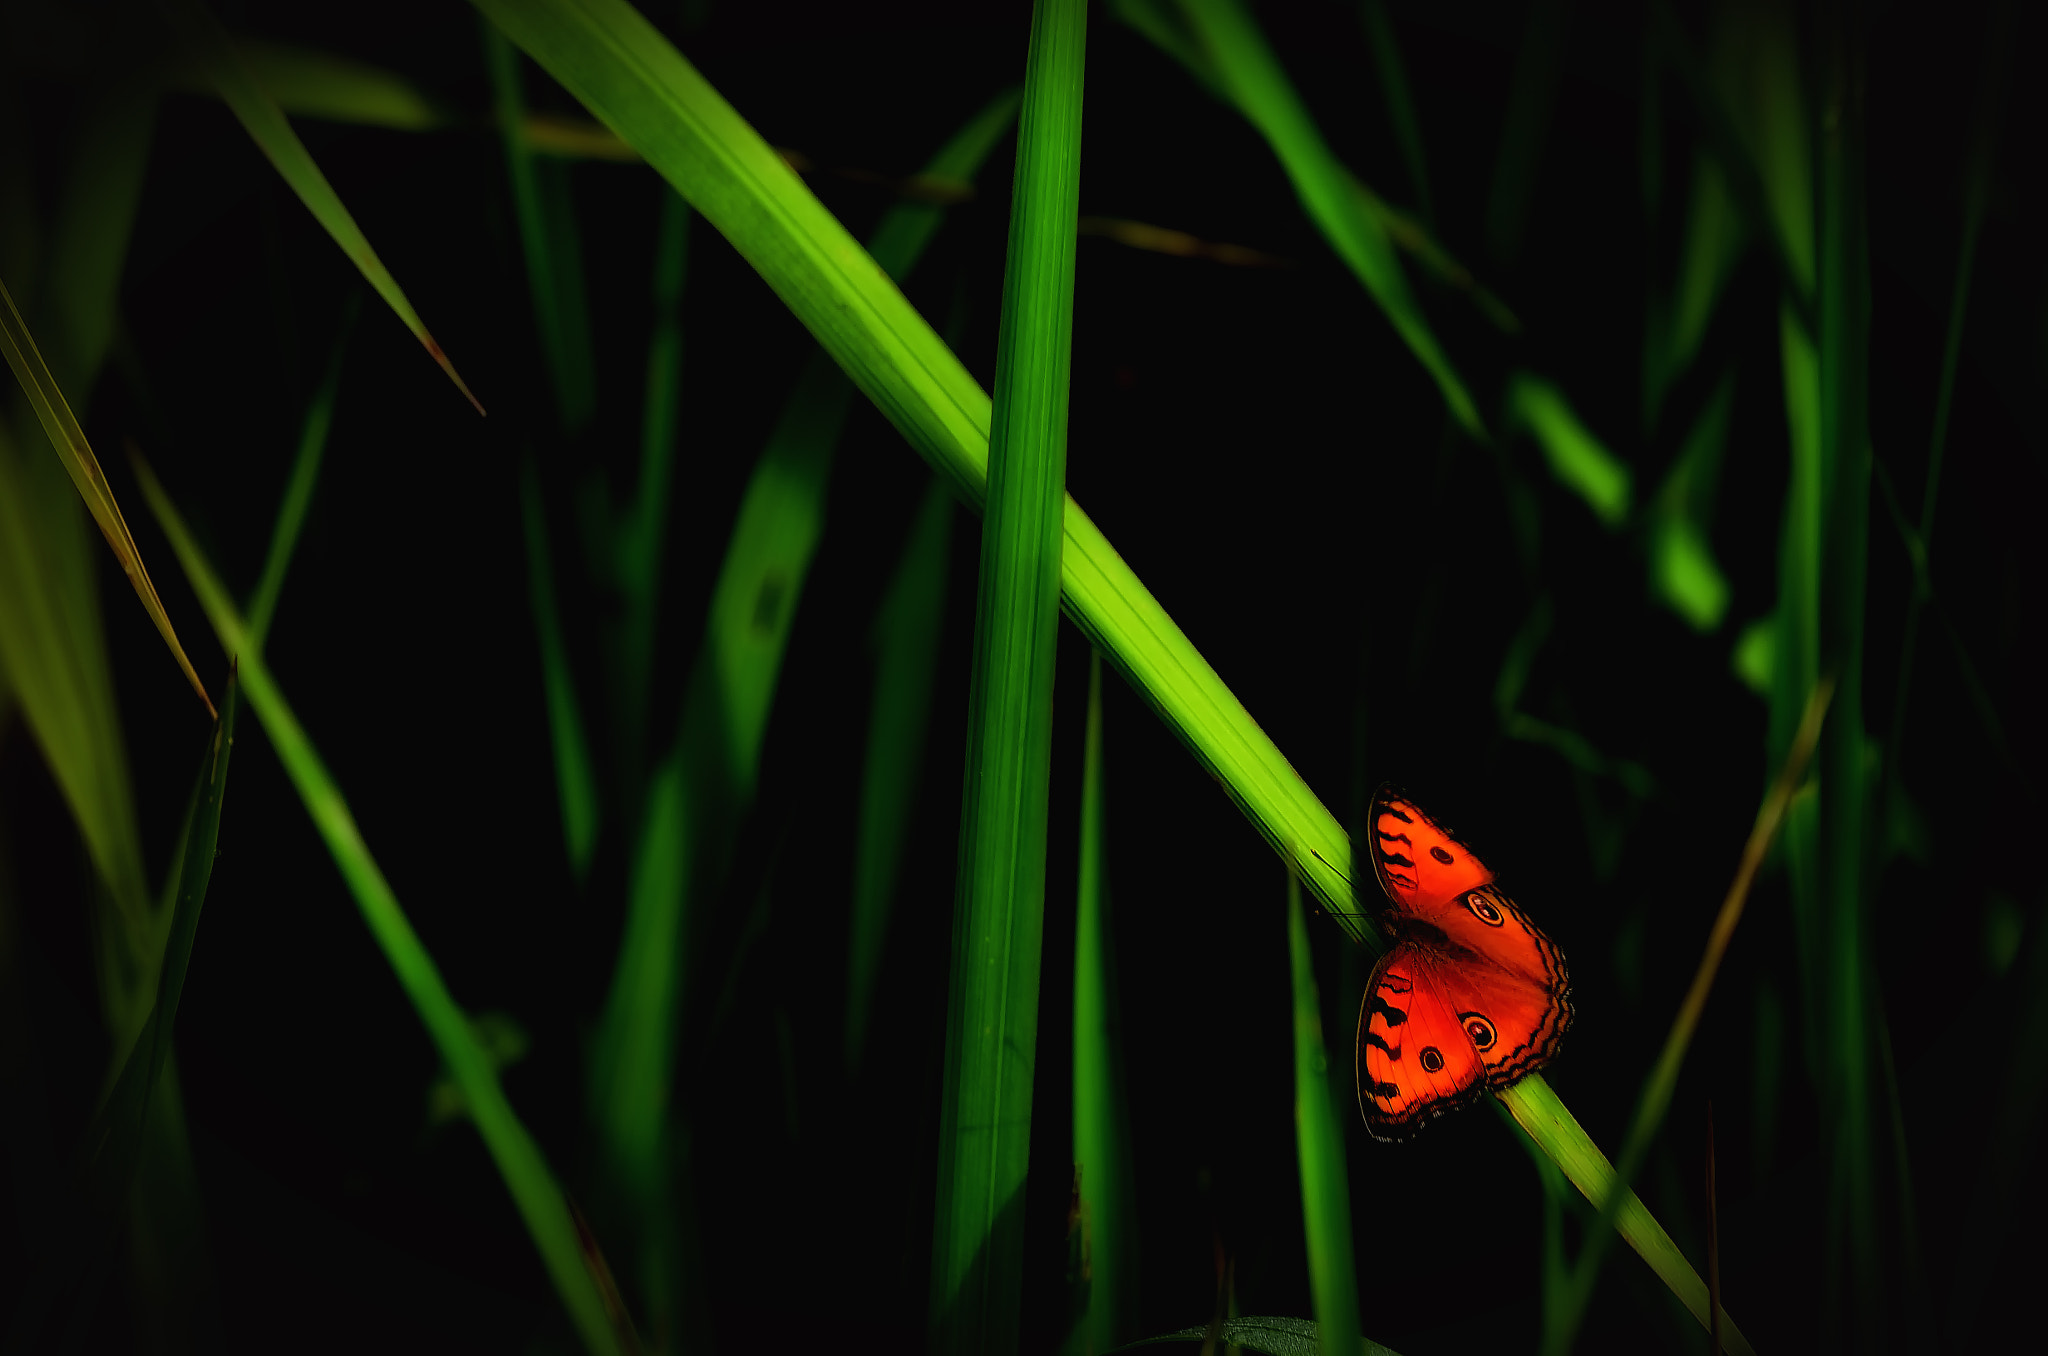 Photograph Grass by Nuang Sangkhsri on 500px